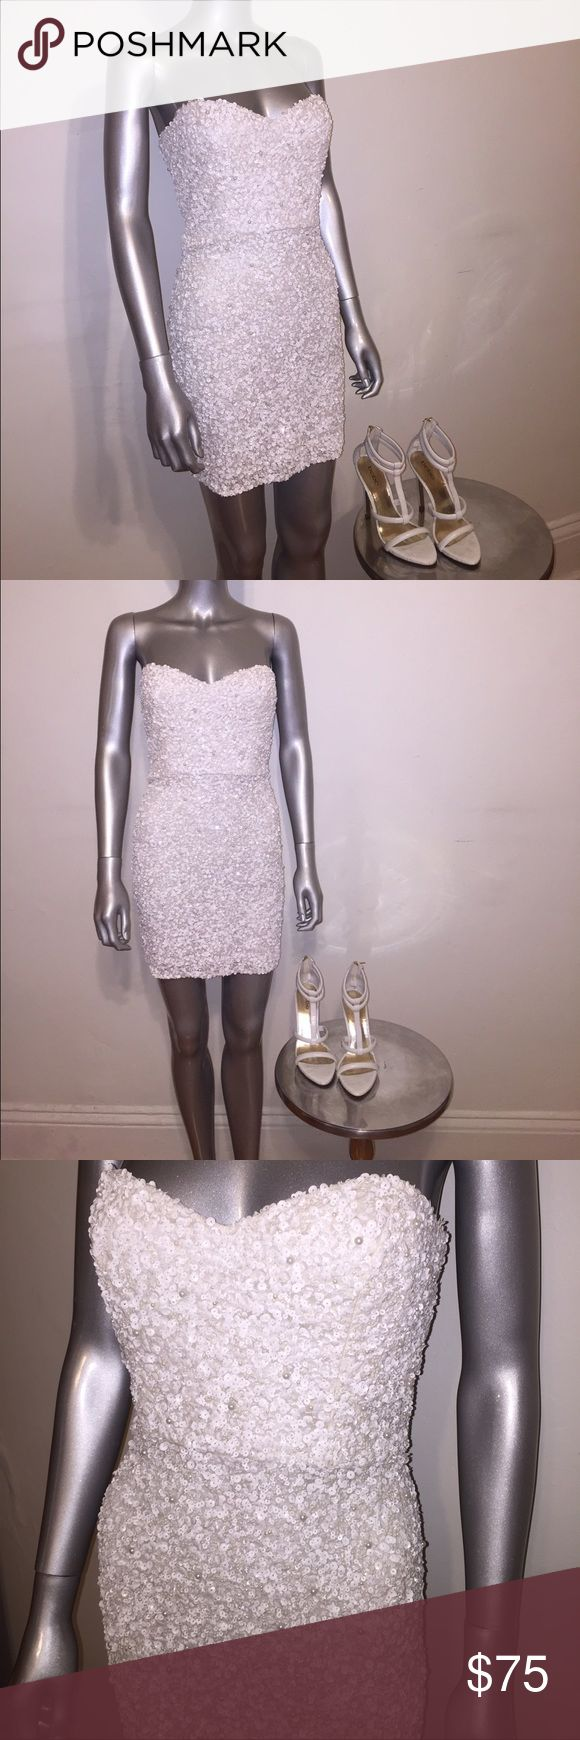 Parker strapless sequin mini dress Parker strapless mini dress embellished with tons of beautiful white sequins, sweetheart top size 6, brand new, broken zipper but I'm willing to fix it if sold at full asking price. If not sold at asking price, buyer takes responsibility and takes it as is. Parker Dresses Strapless